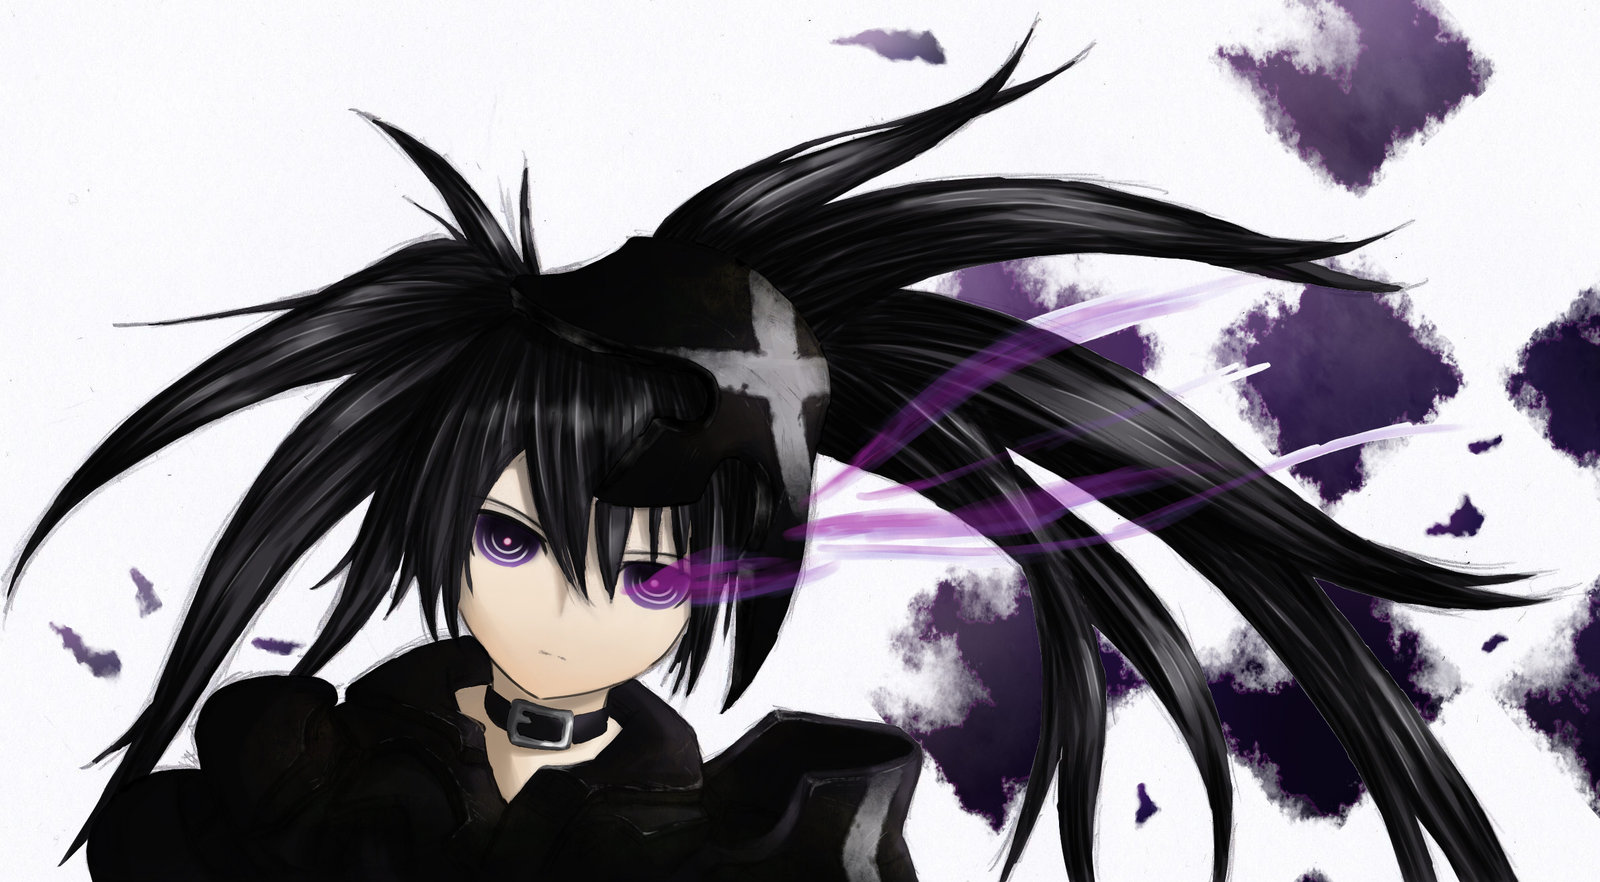 46] Insane Black Rock Shooter Wallpaper on WallpaperSafari 1600x882